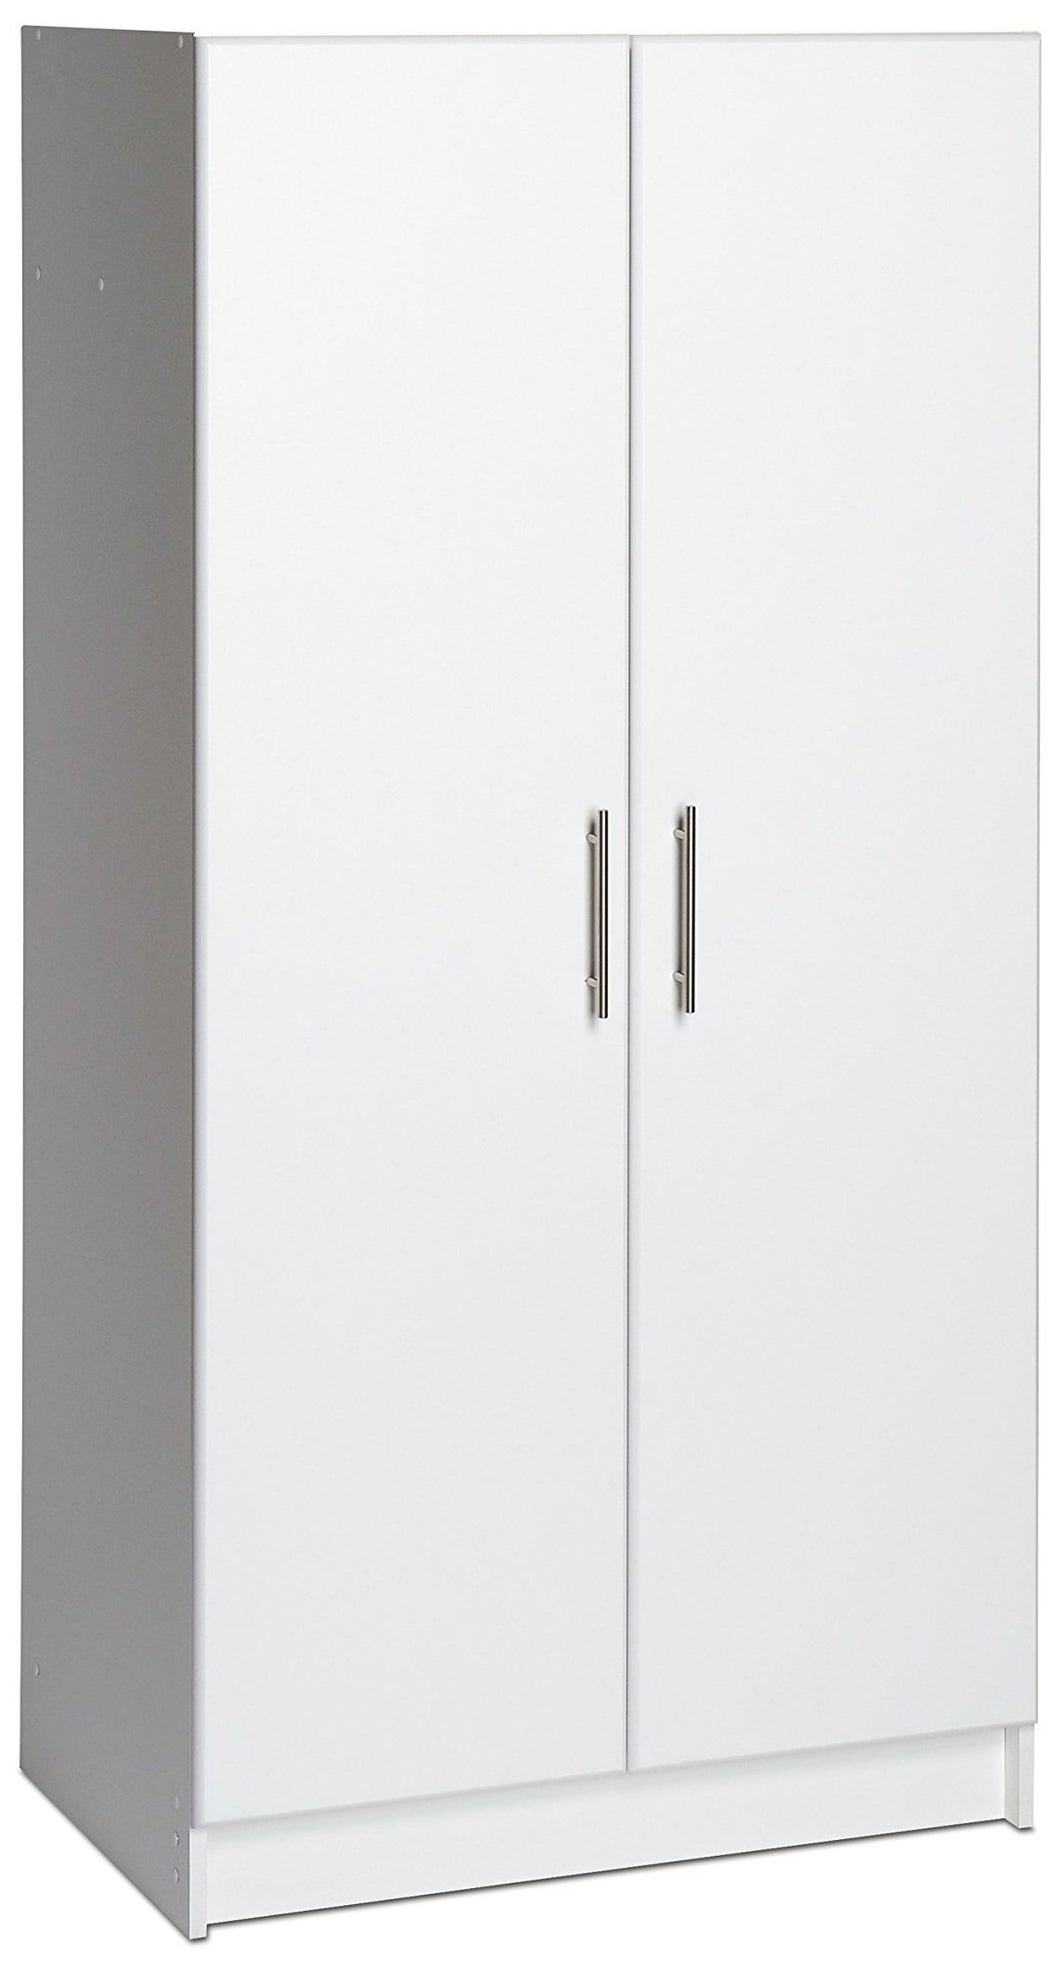 Exclusive elite 32 storage cabinet